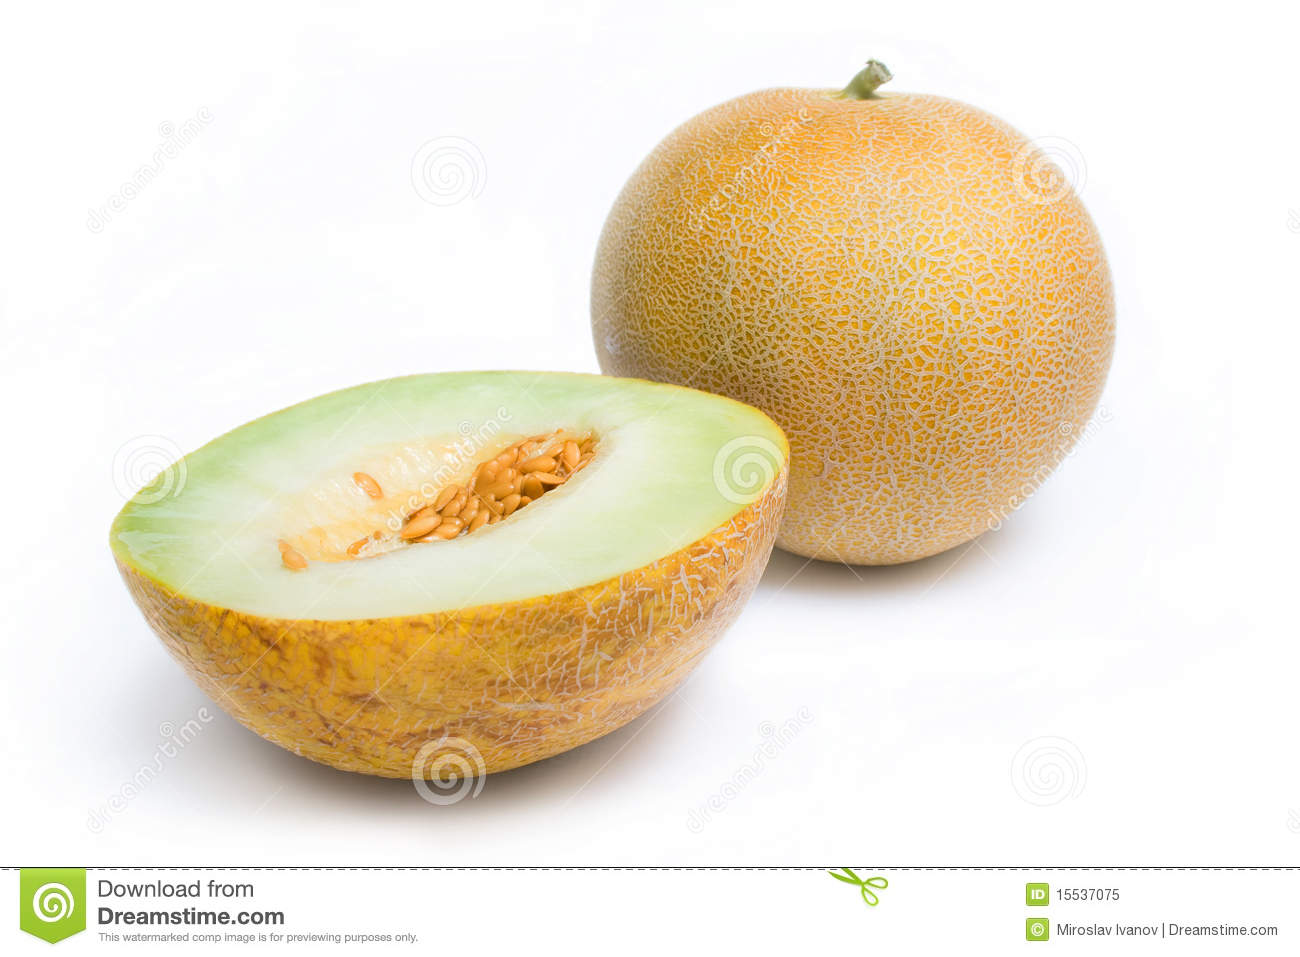 Honeydew melon is an ideal addition to any garden. It is important to understand when it is ripe and how to recognize the signs, so you can pick it when it is most flavorful. You need to use four senses to determine whether a melon is ripe, over-ripe or under-ripe.